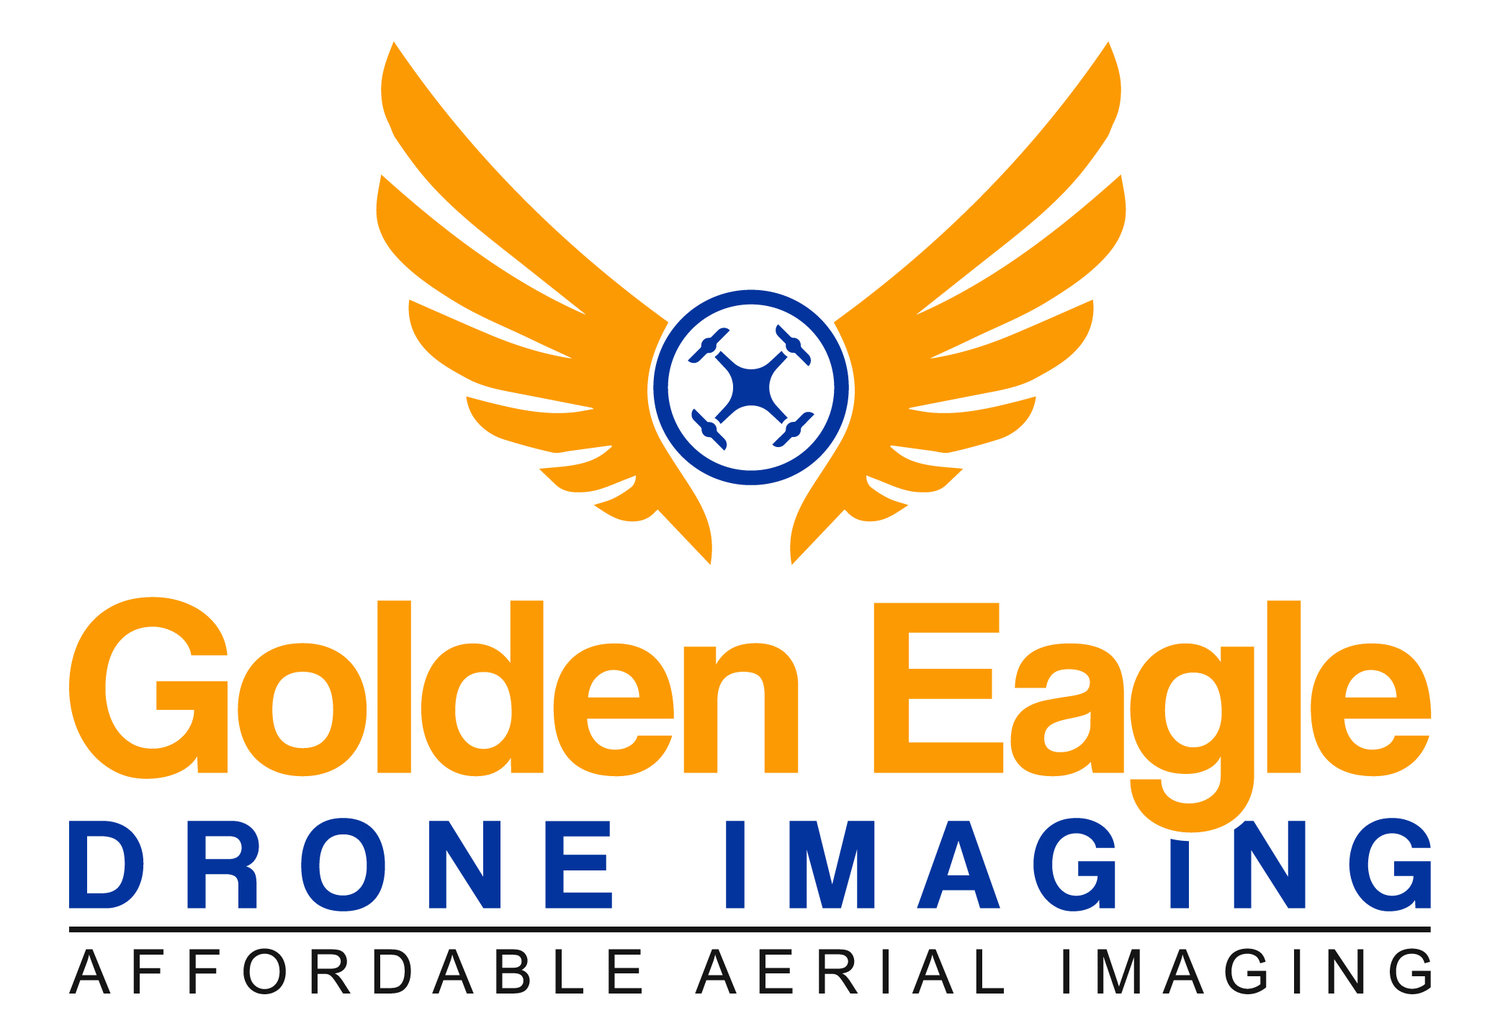 Golden Eagle Drone Imaging